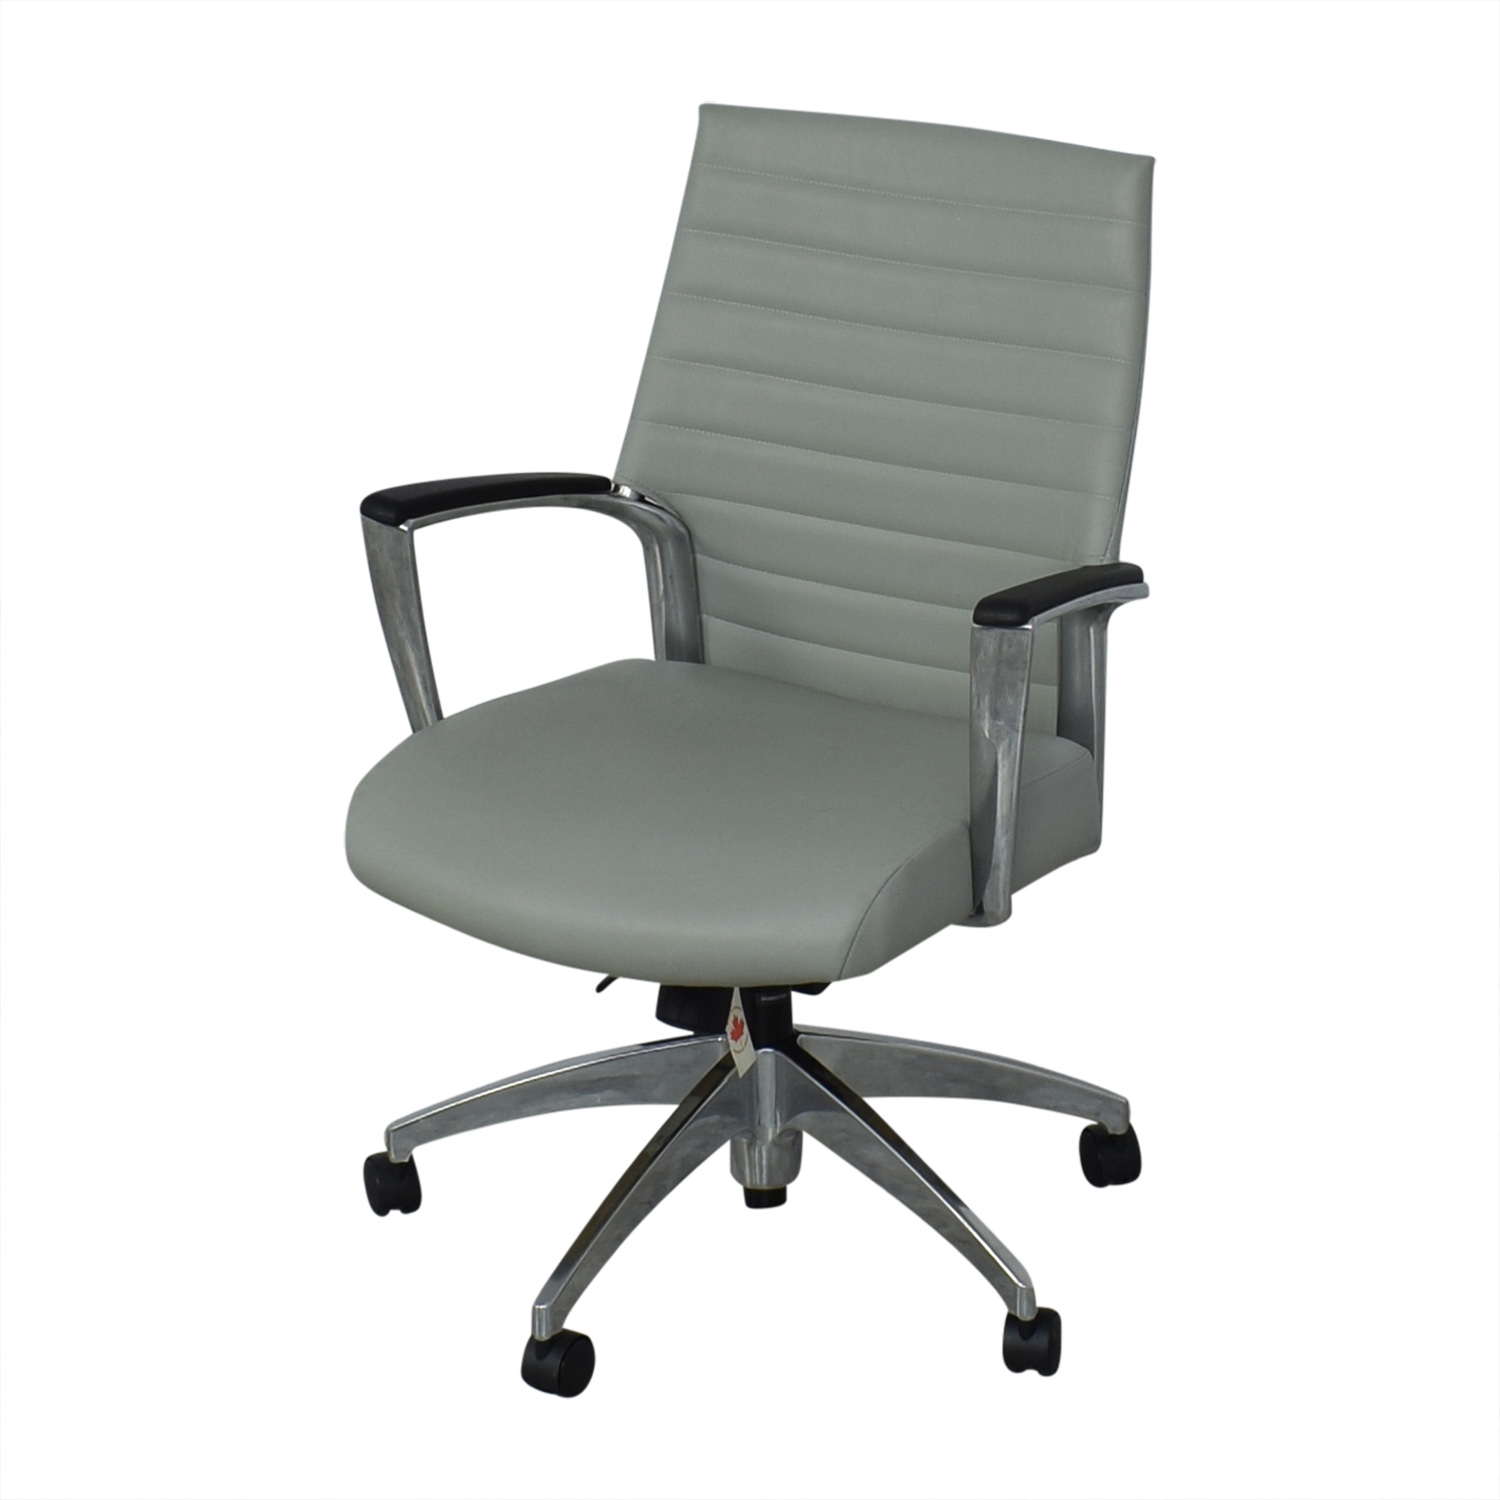 Global Global Accord Medium Back Tilter Chair second hand